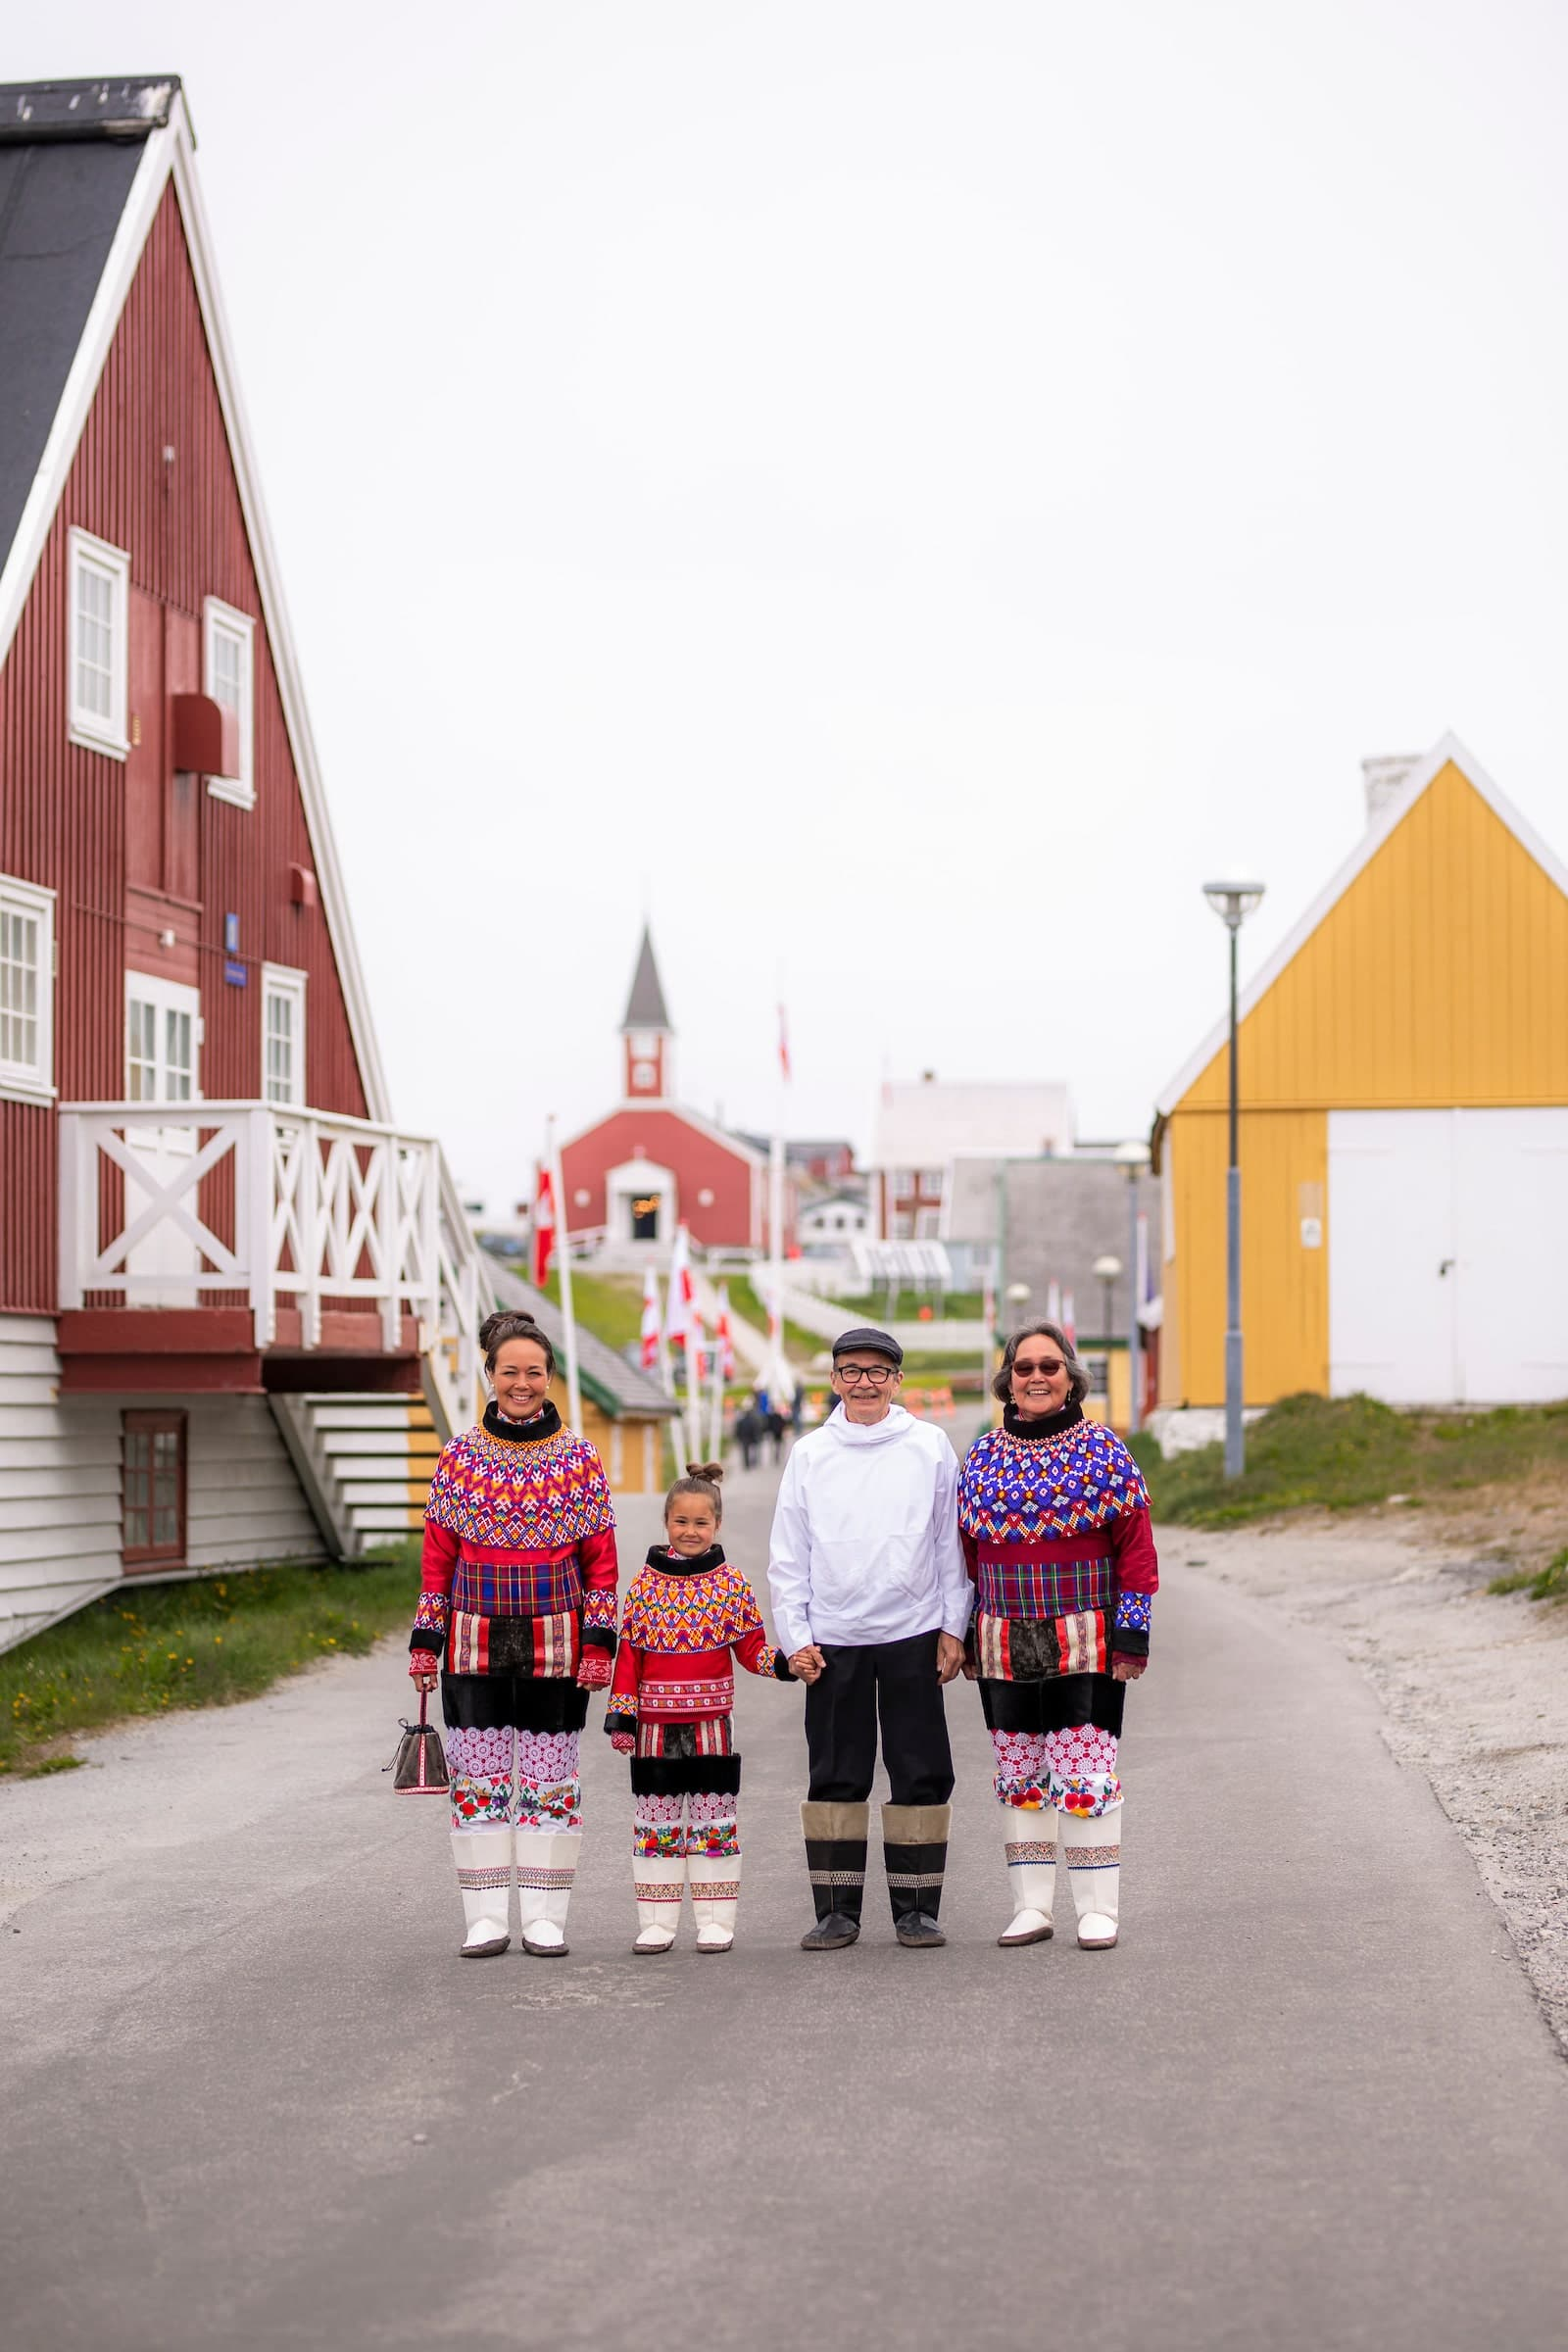 The National Day In Their National Clothings. The Family In Their National Clothing. National Clothing. National Day Gathering By The Old Harbour. Photo by Aningaaq R Carlsen - Visit Greenland